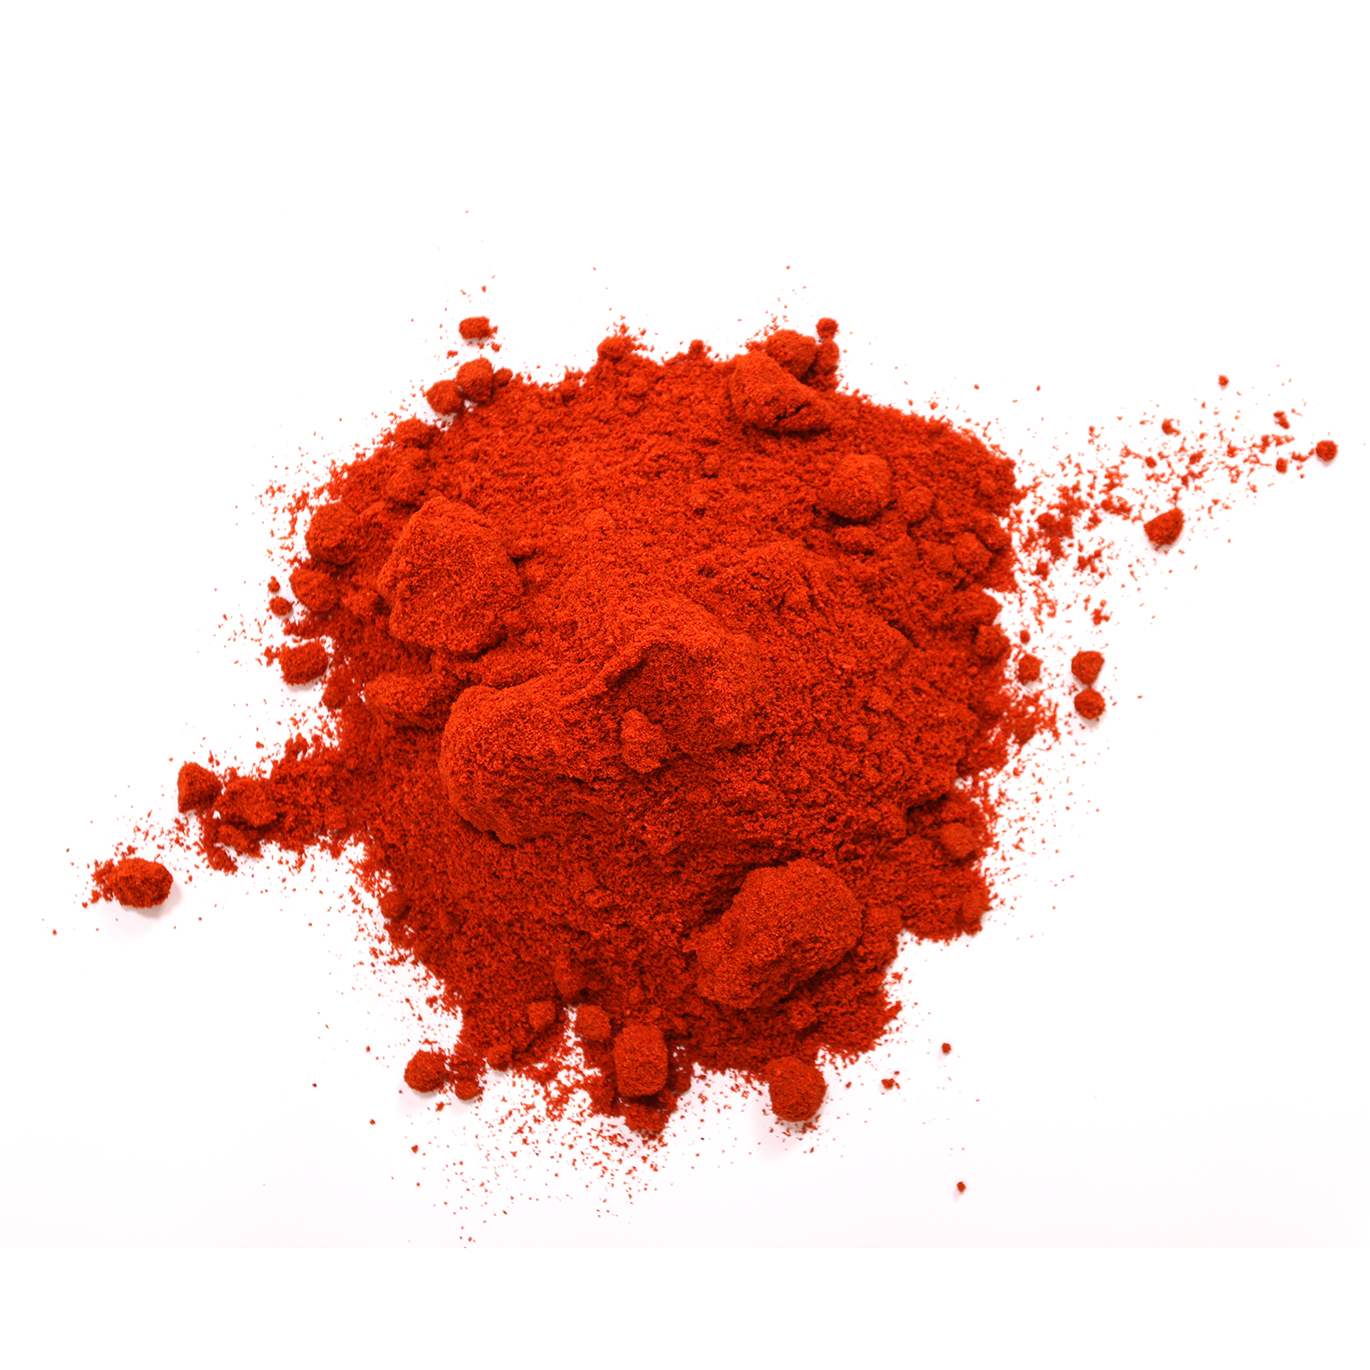 Red Chilli Powder (Lal Mirch)